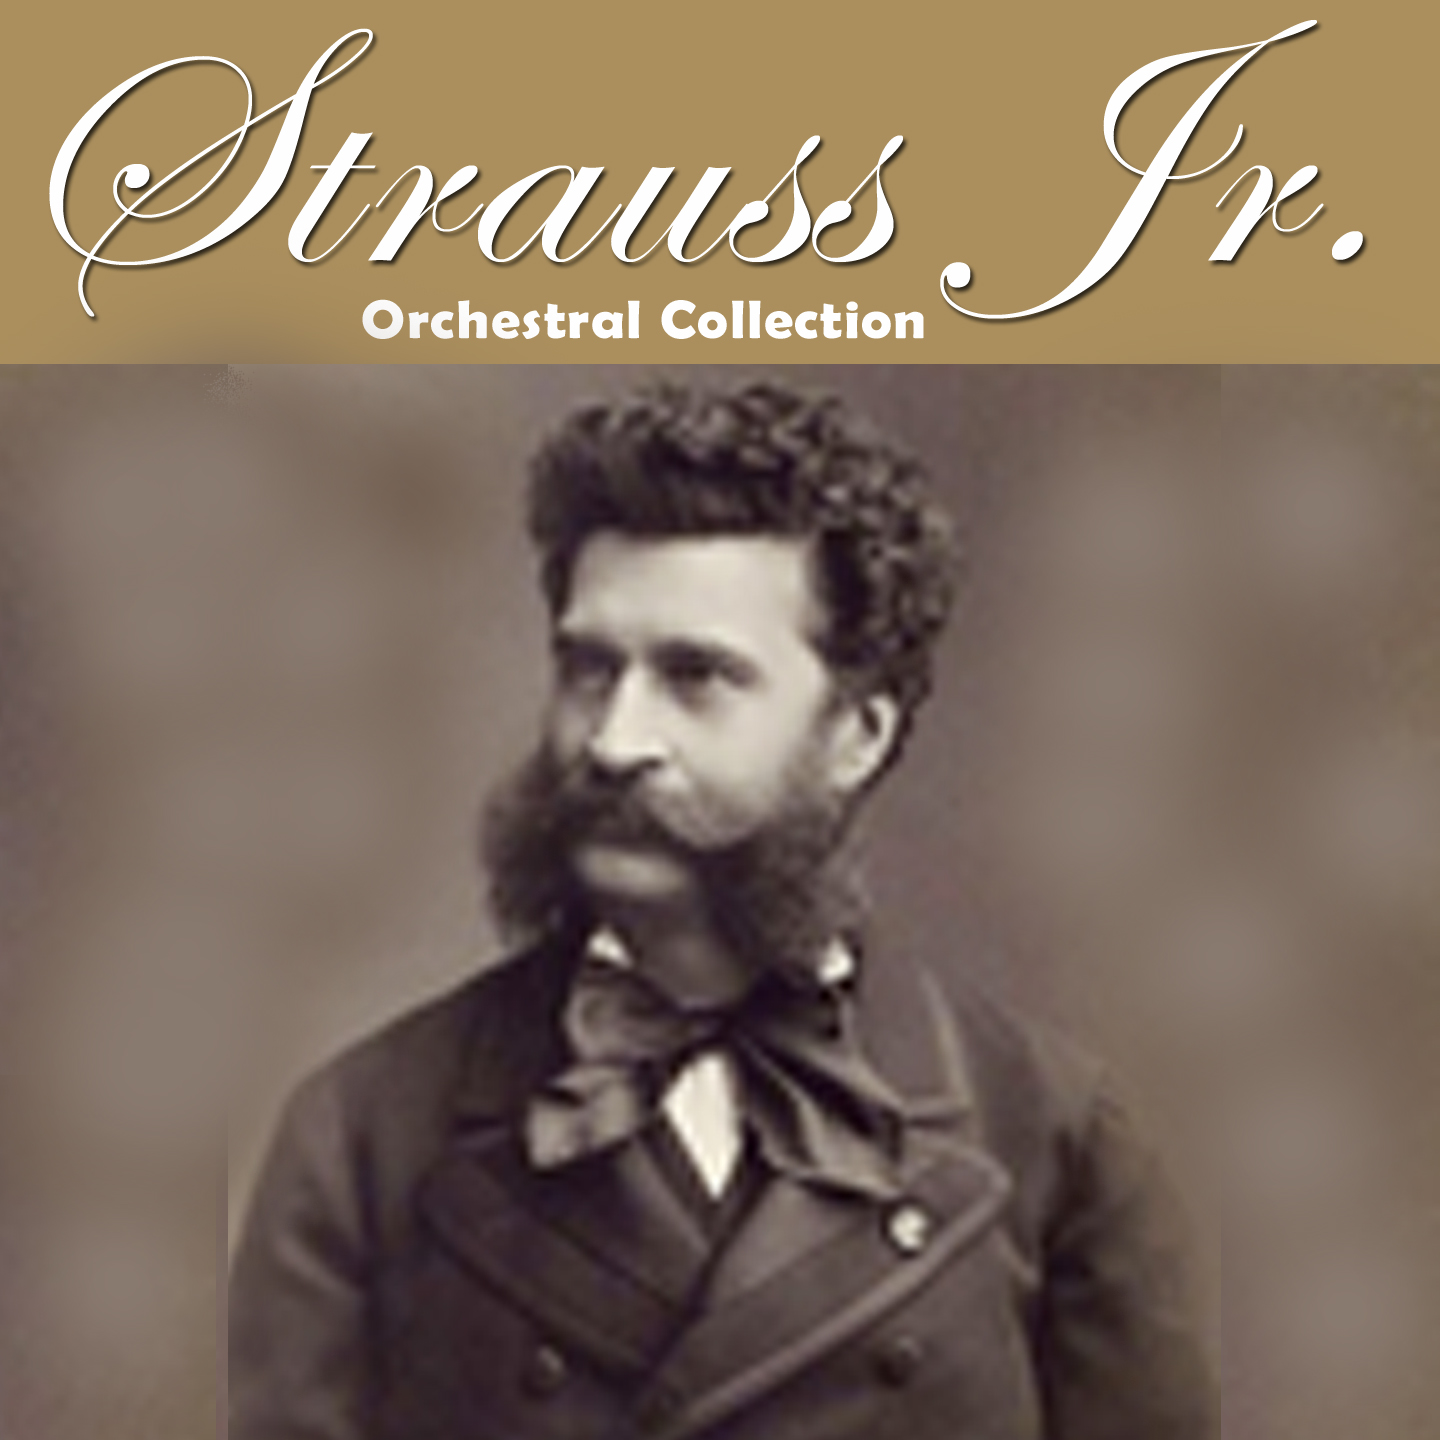 Strauss II: Orchestral Collection